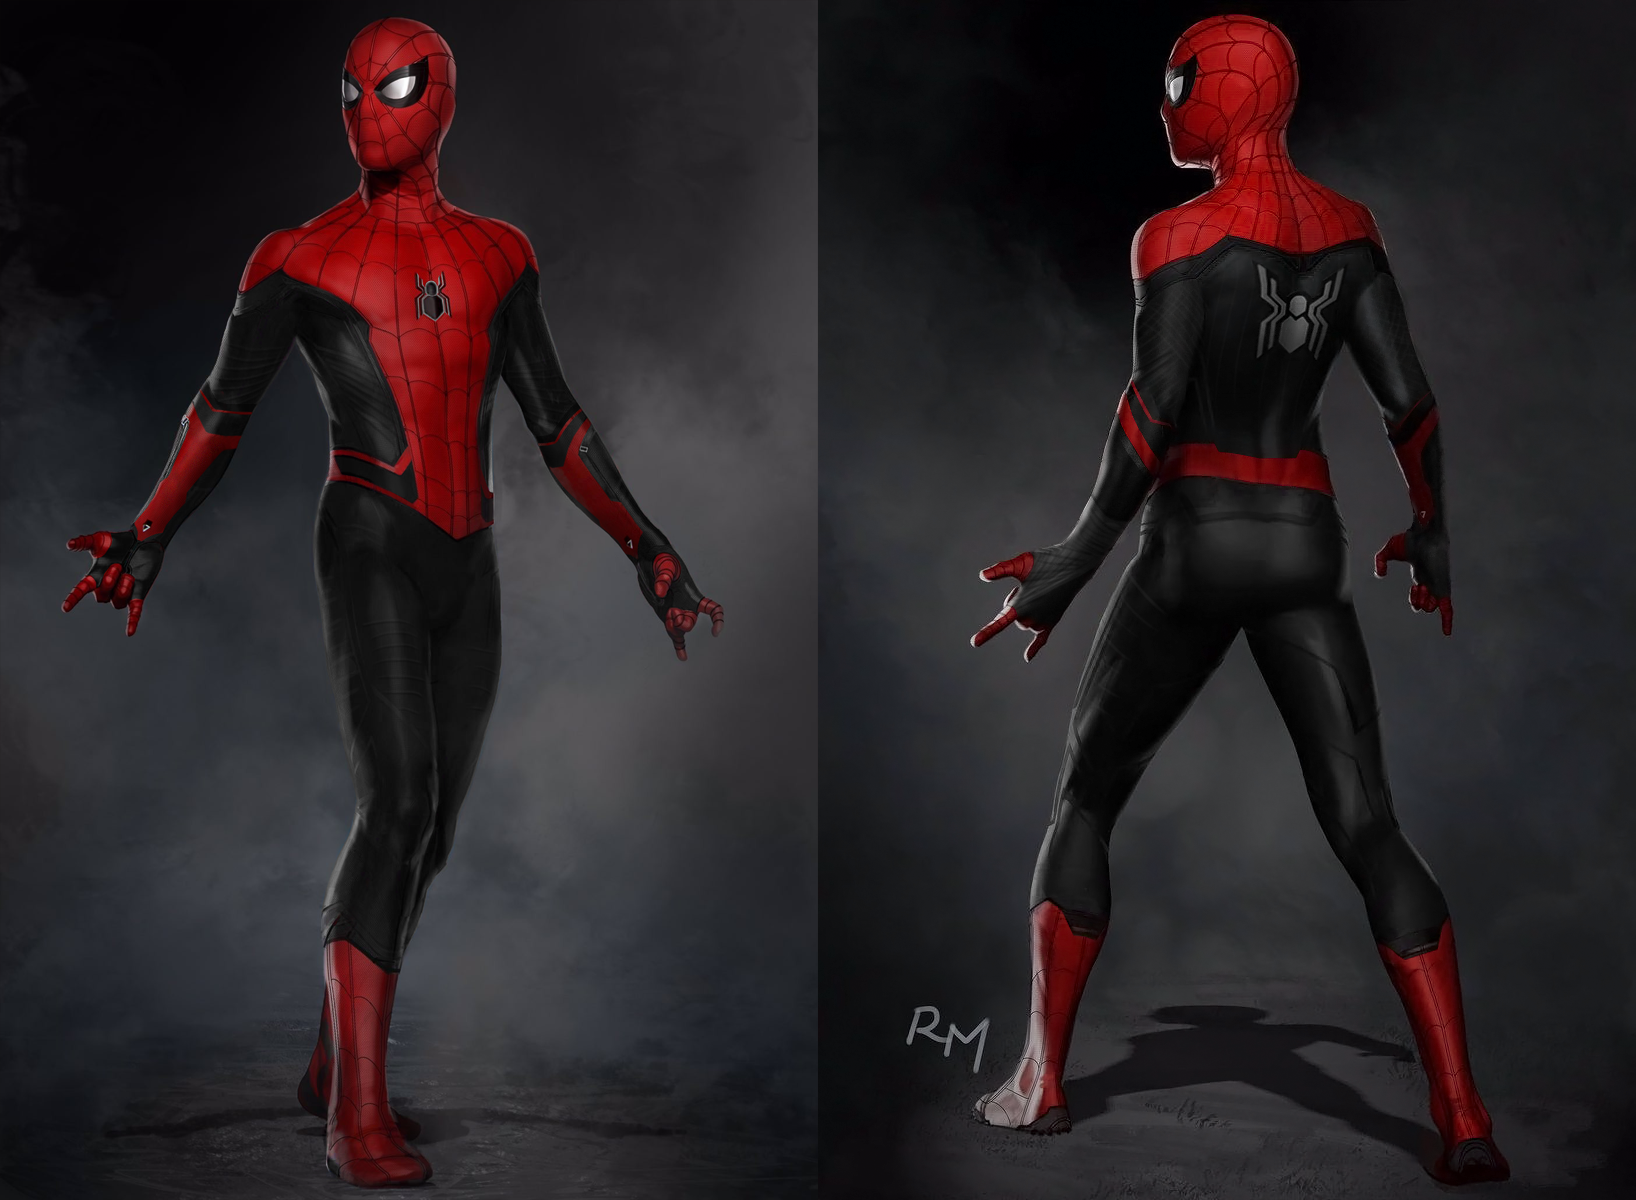 Spiderman Far From Home Suit Art By Ryan Meinerding Spiderman Spiderman Pictures Black Spiderman